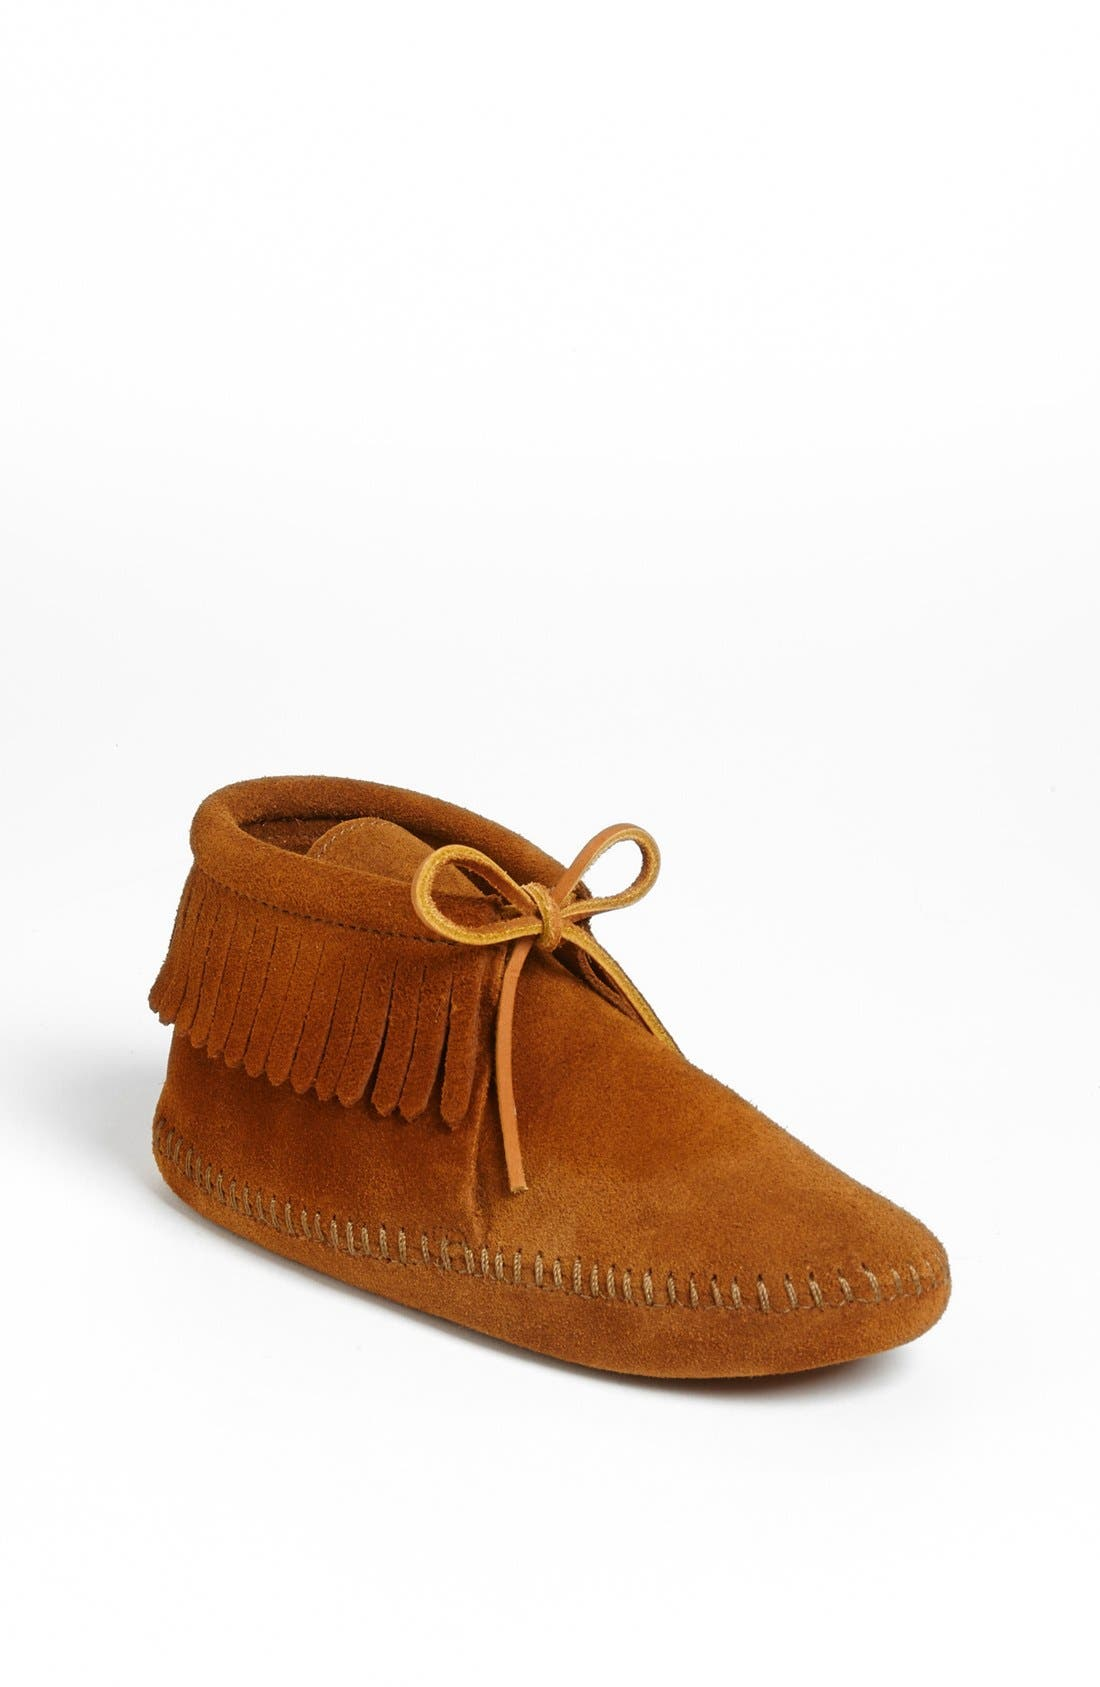 'Classic Fringe' Boot,                         Main,                         color, Brown